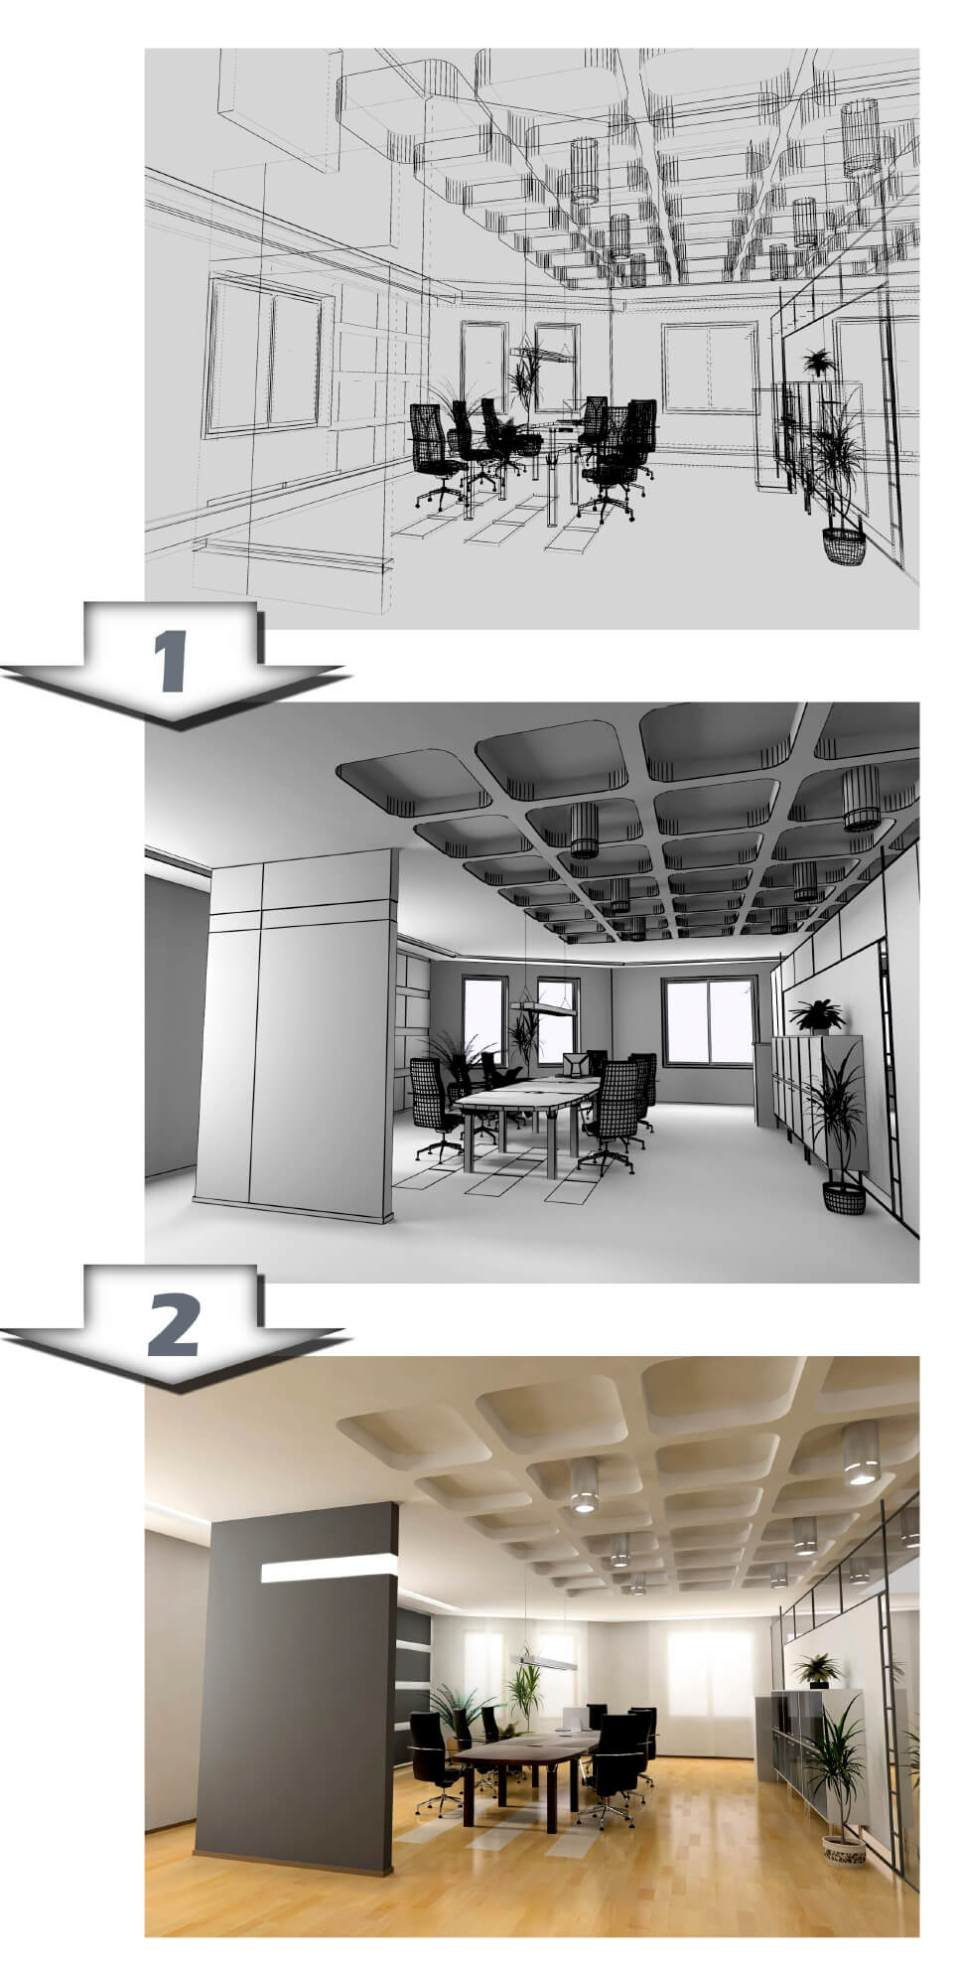 image showing office design process from sketch to CAD illustration and full graphic rendering